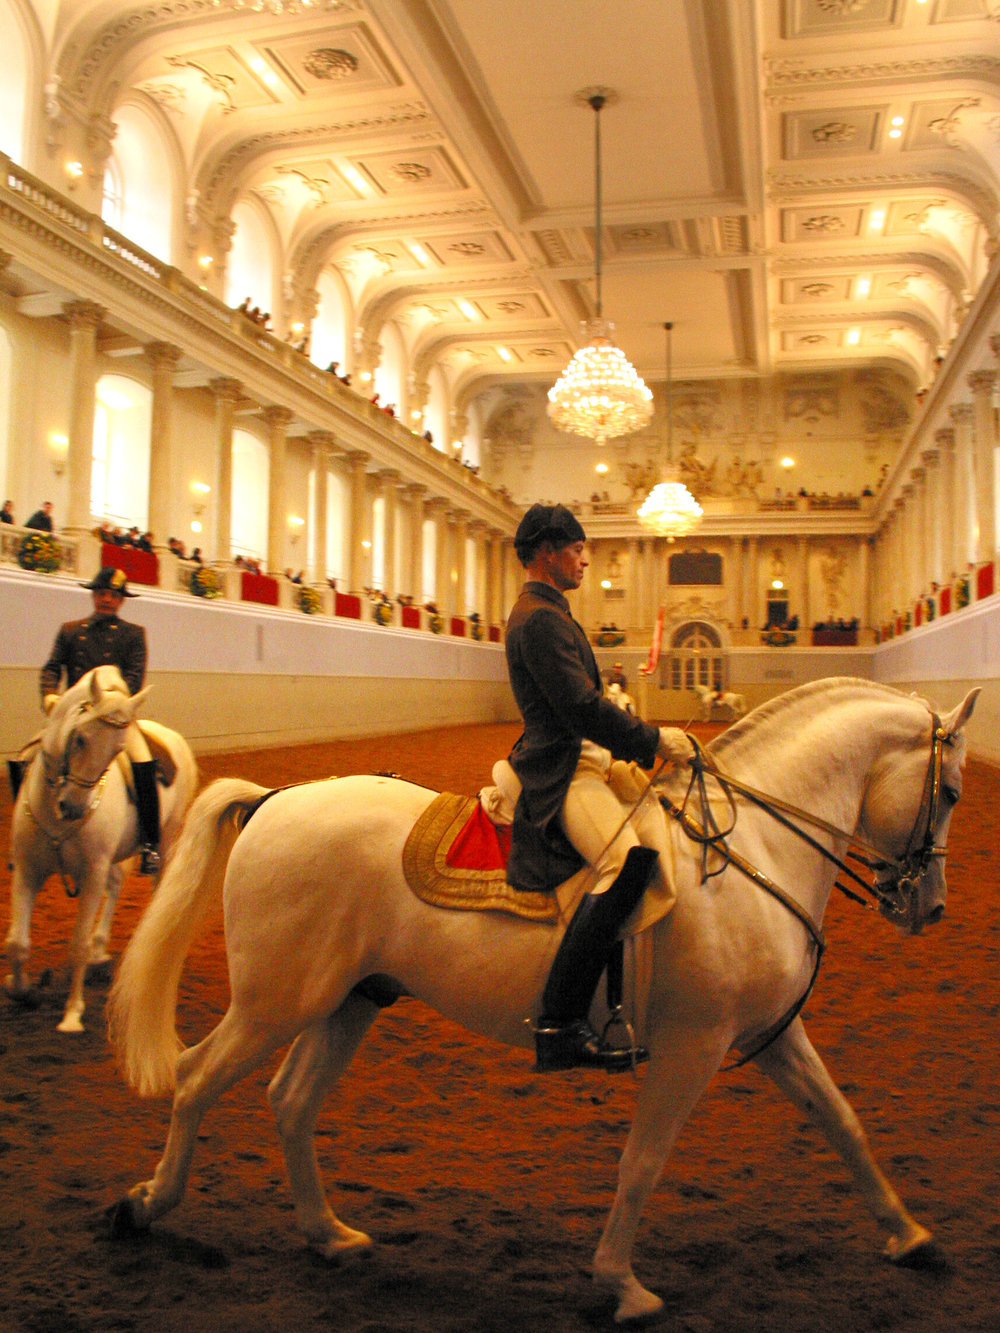 Royal Spanish Riding Academy, Vienna